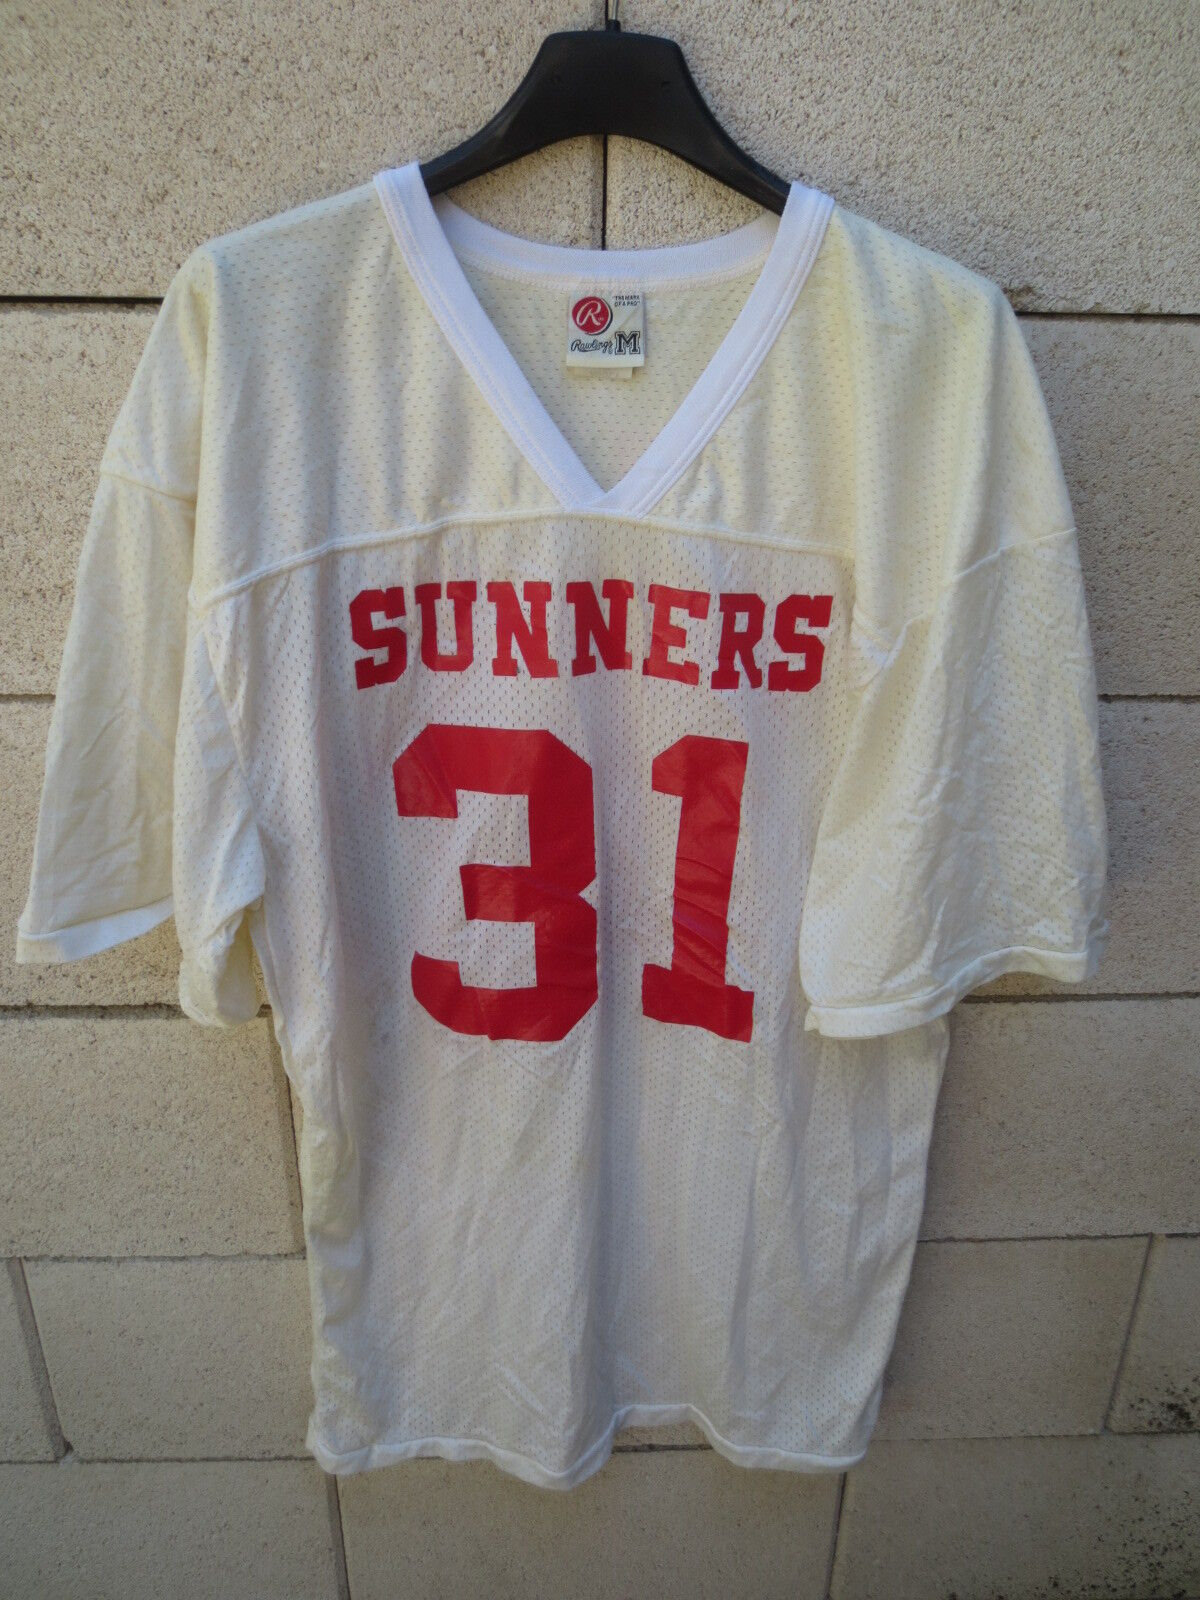 Maillot foot vintage américain US SUNNERS PACHARIS n°31 vintage foot made in USA 80's shirt b6139c